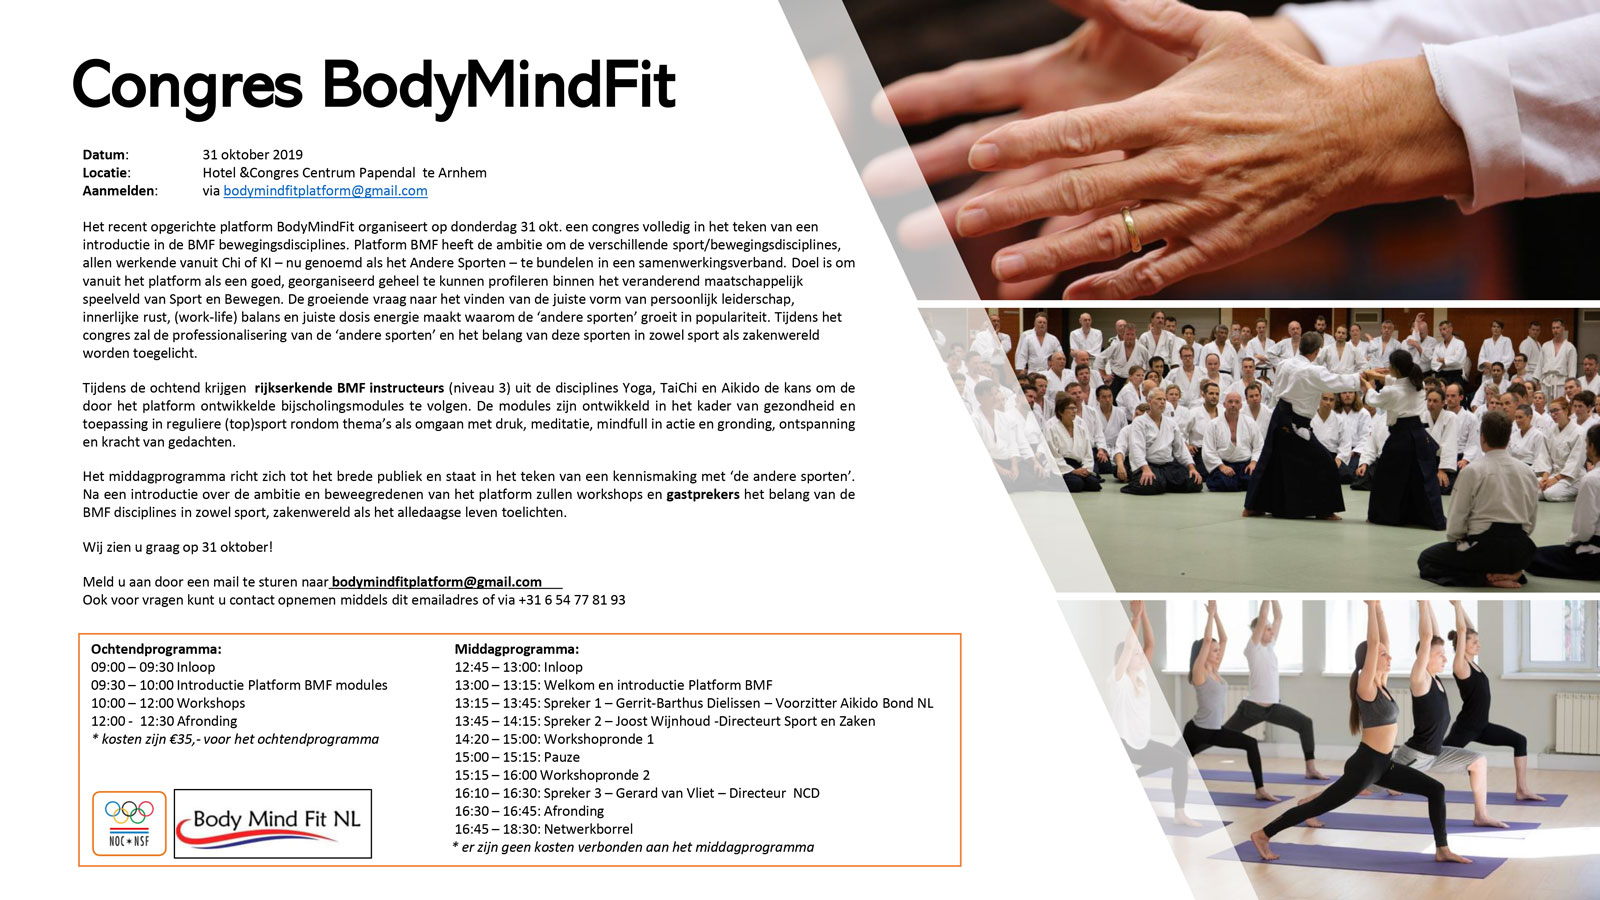 Body Mind Fit congres donderdag 31 oktober